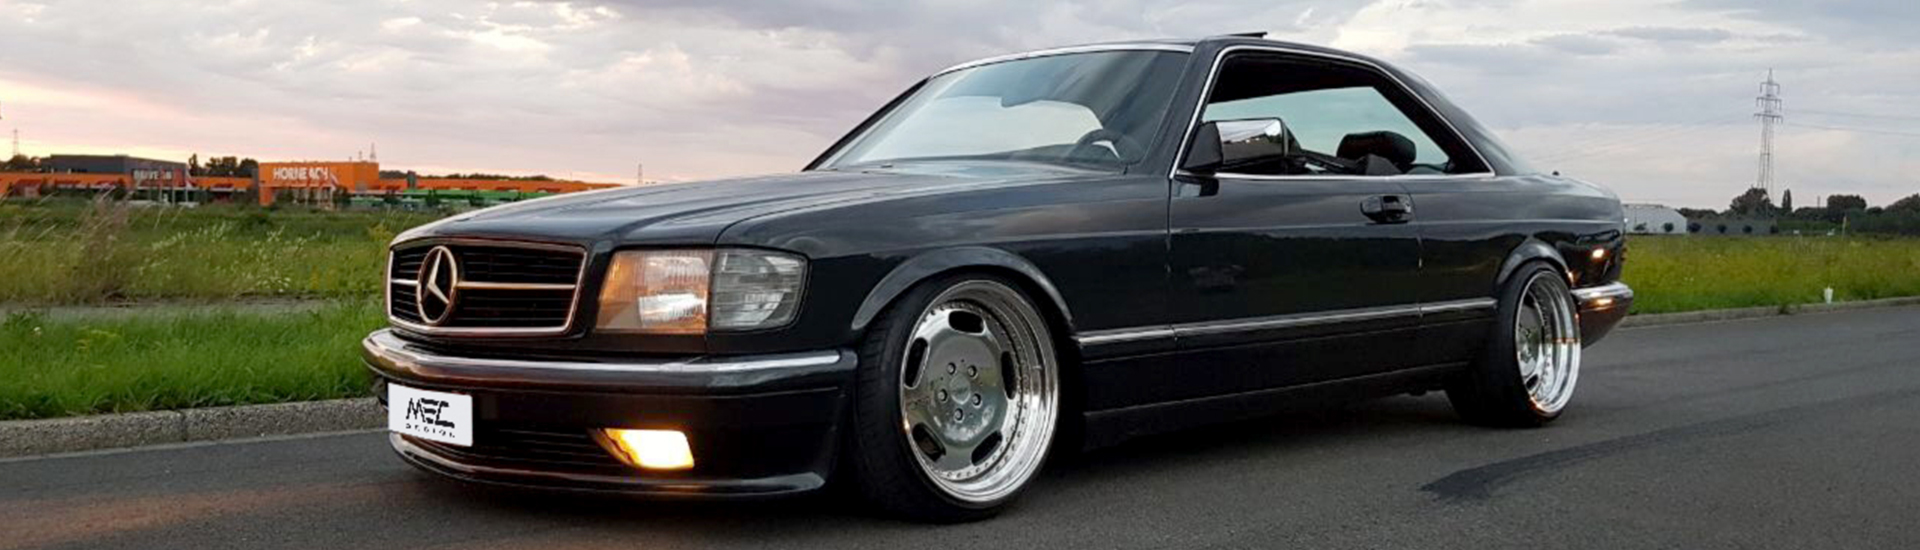 mec design tuning and modification for the mercedes w126